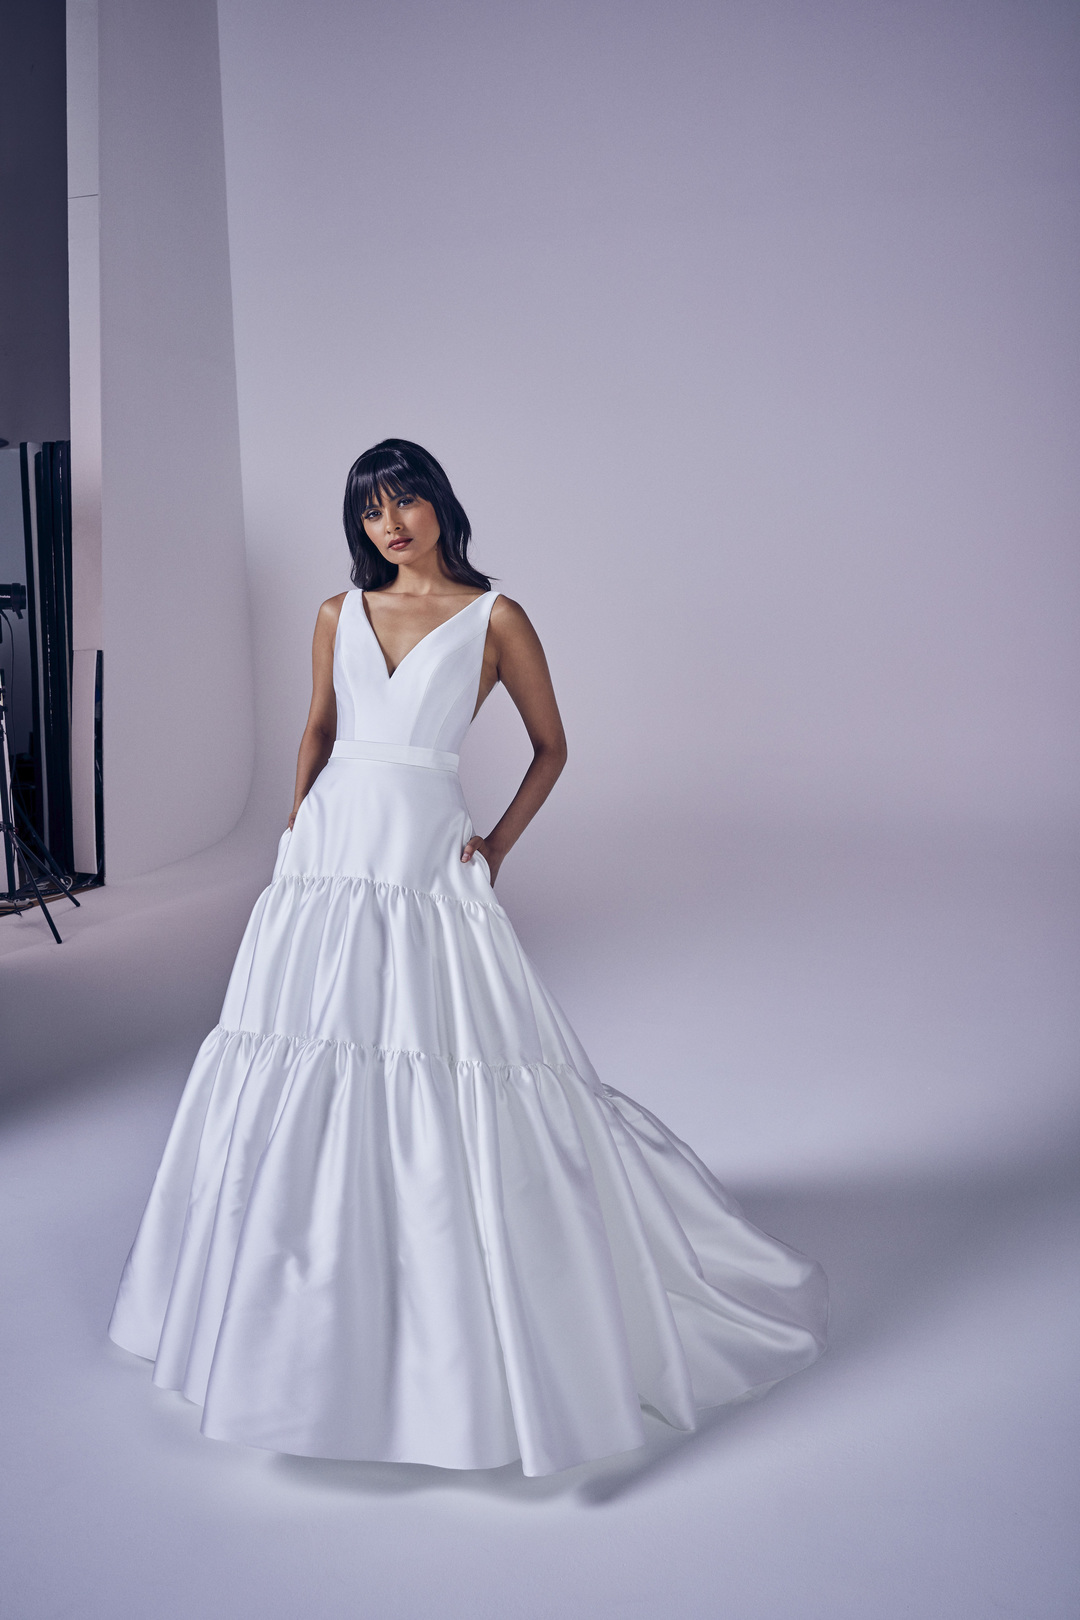 romilly dress photo